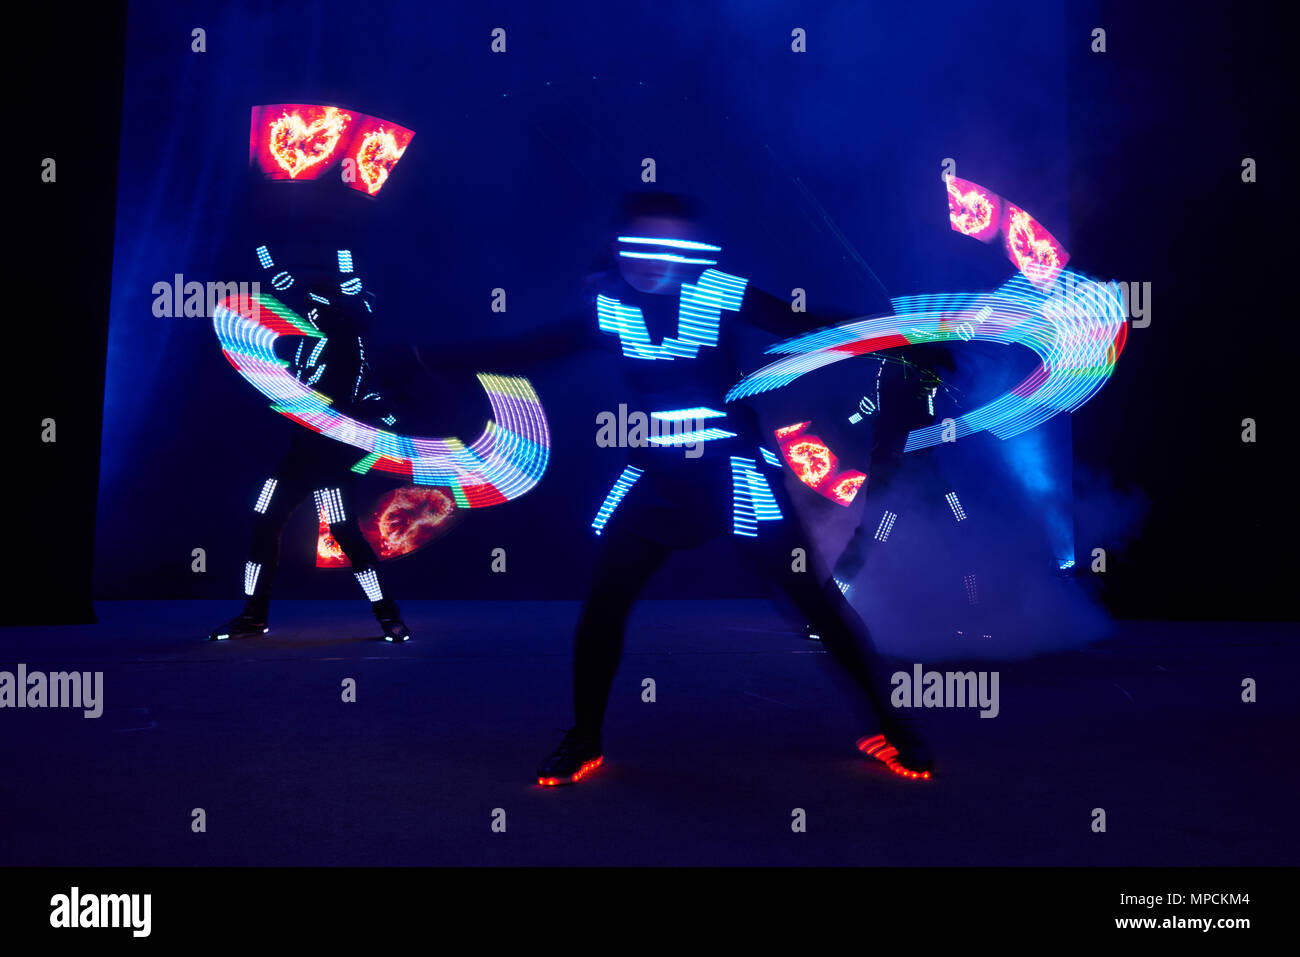 Show With LampVery In Suits Led PerformanceDancers Laser ZuiPXk